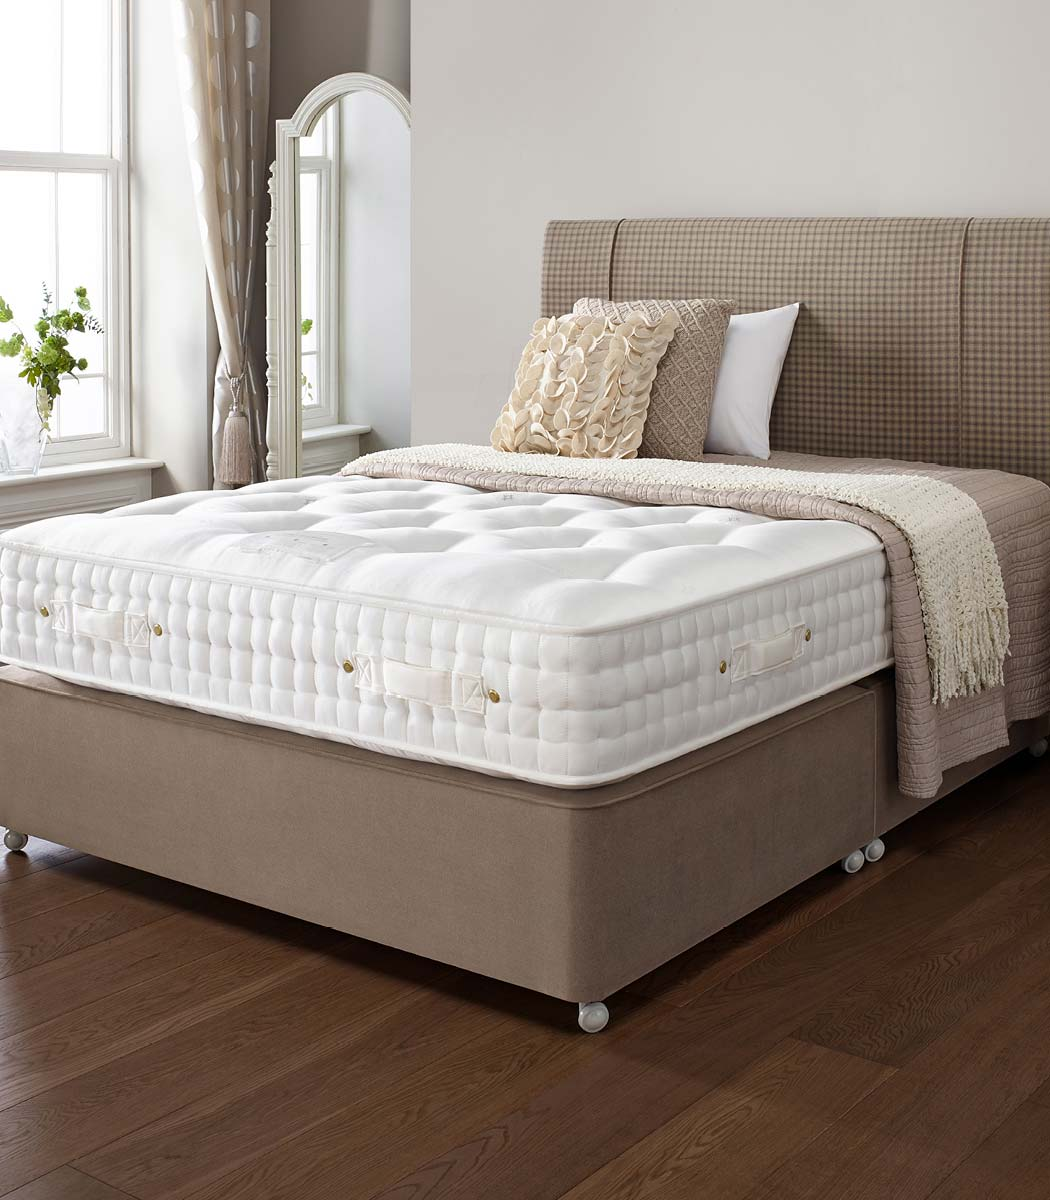 Harrison Beds collection